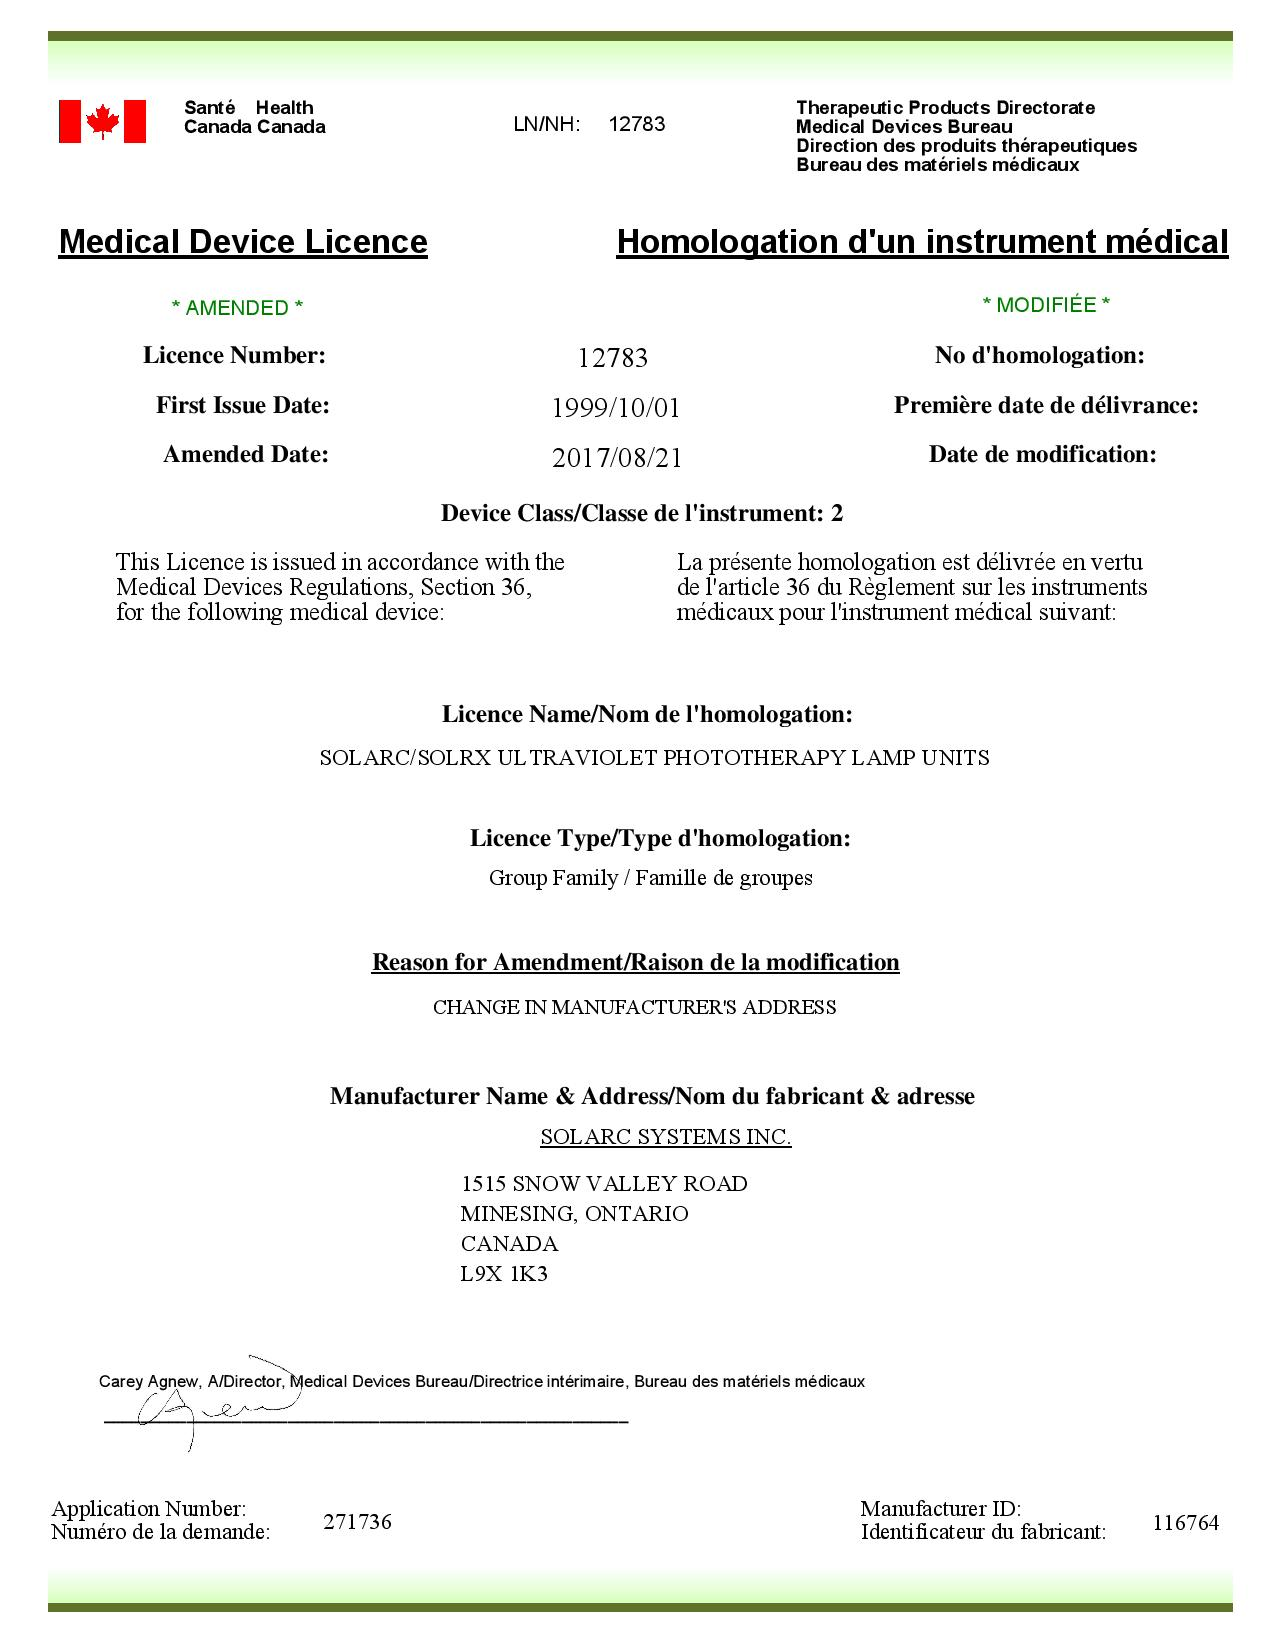 Solarc Health Canada Device Licence 12783 Change Postal Code 2017 08 21 page 001 Solarc Systems FDA